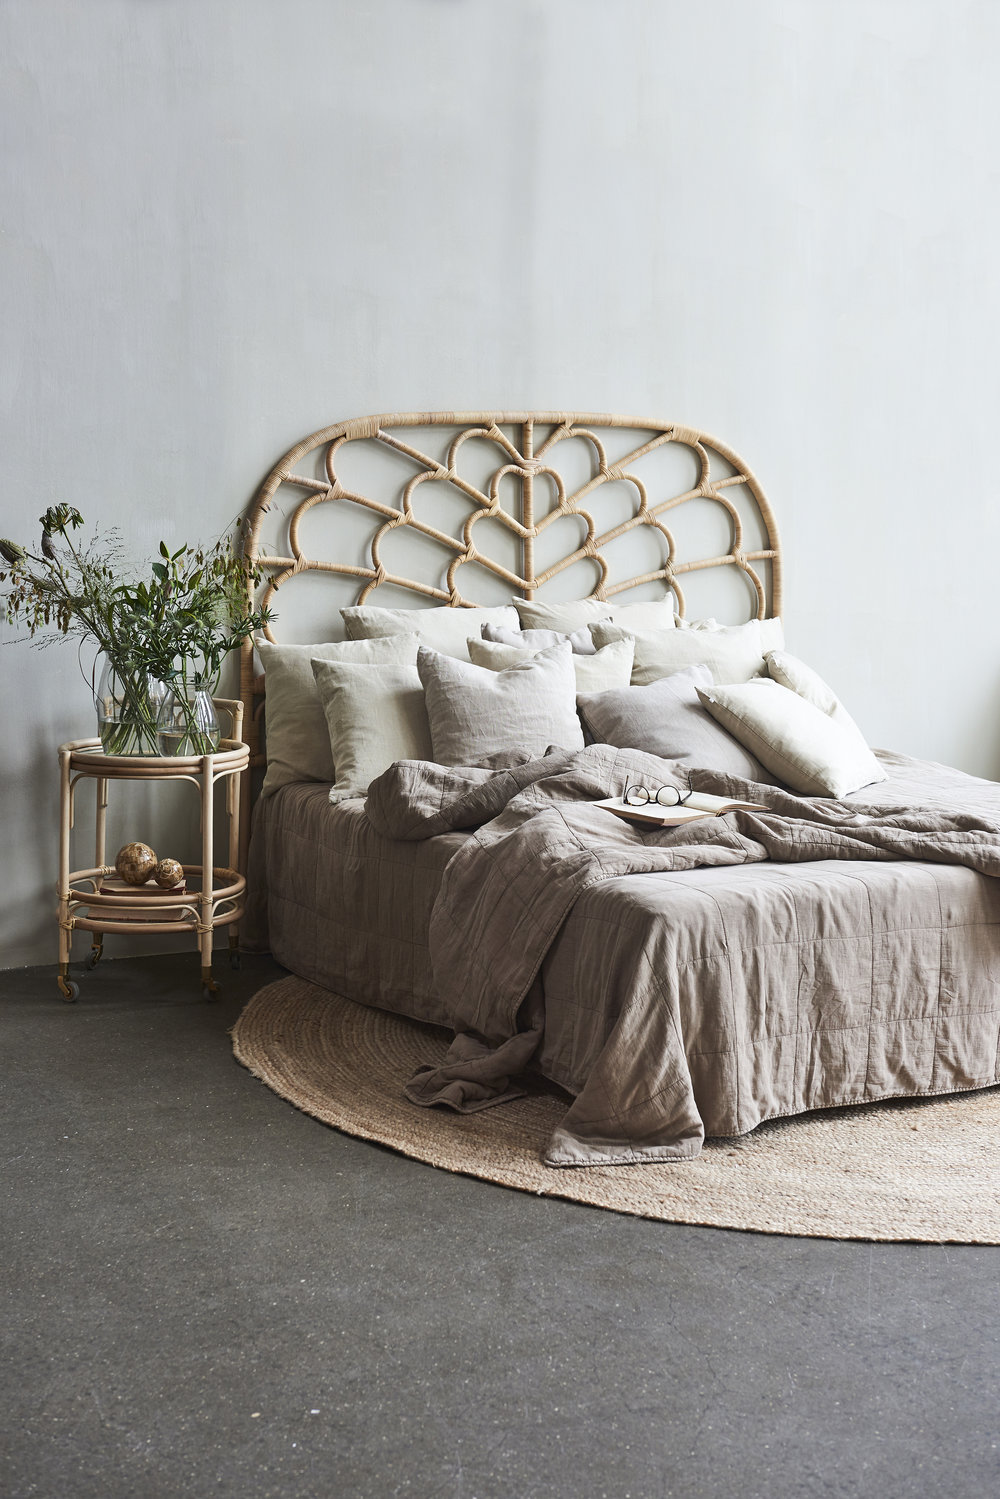 Celia headboard / Fratellino Trolley/ round braided jute rug